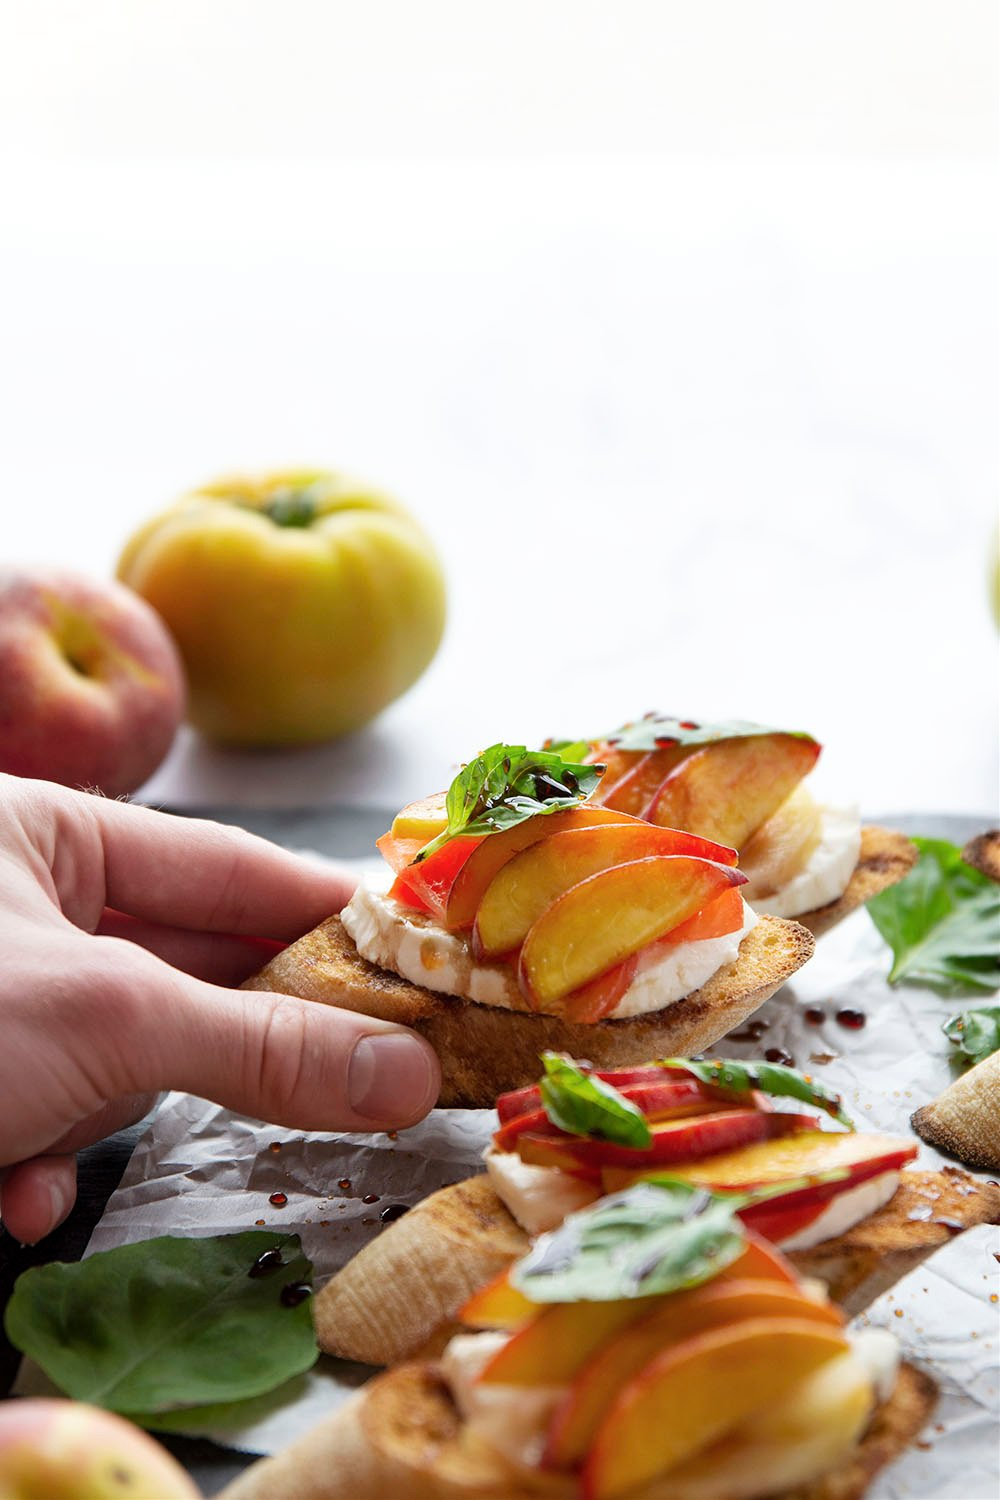 Juicy peaches and all the classic caprese ingredients collide in this summery caprese peach bruschetta that's quick to whip up and perfect for summer entertaining!